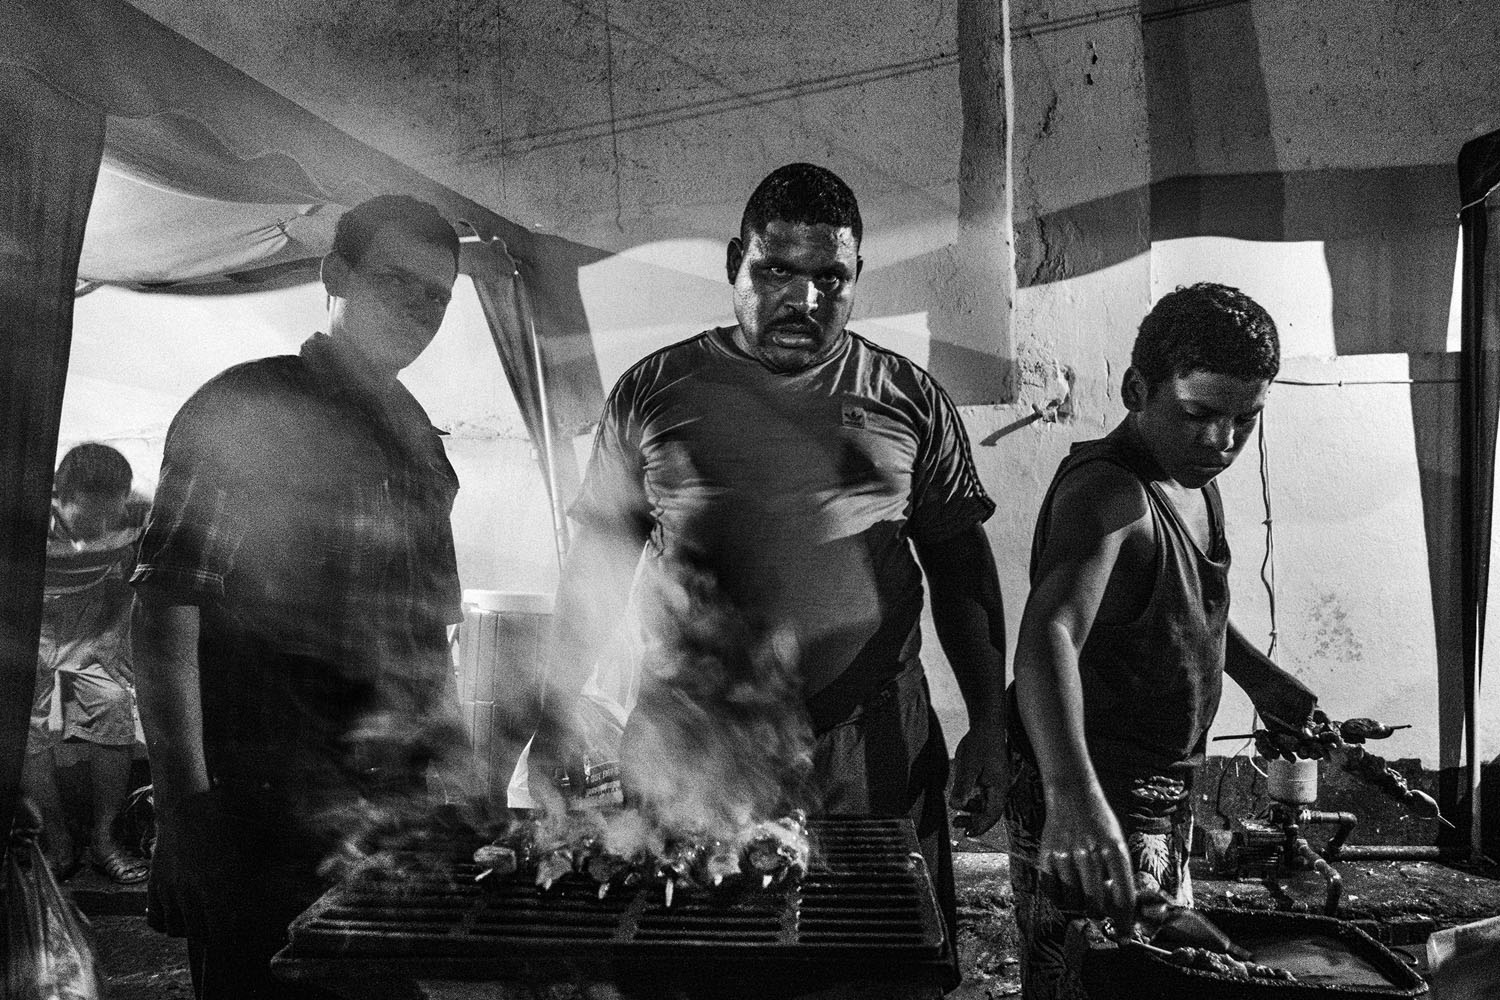 With his two sons, a prisoner grills meat to sell to other inmates and their visitors. Since the inmates have taken control of the prison, they have the freedom to run their our businesses.